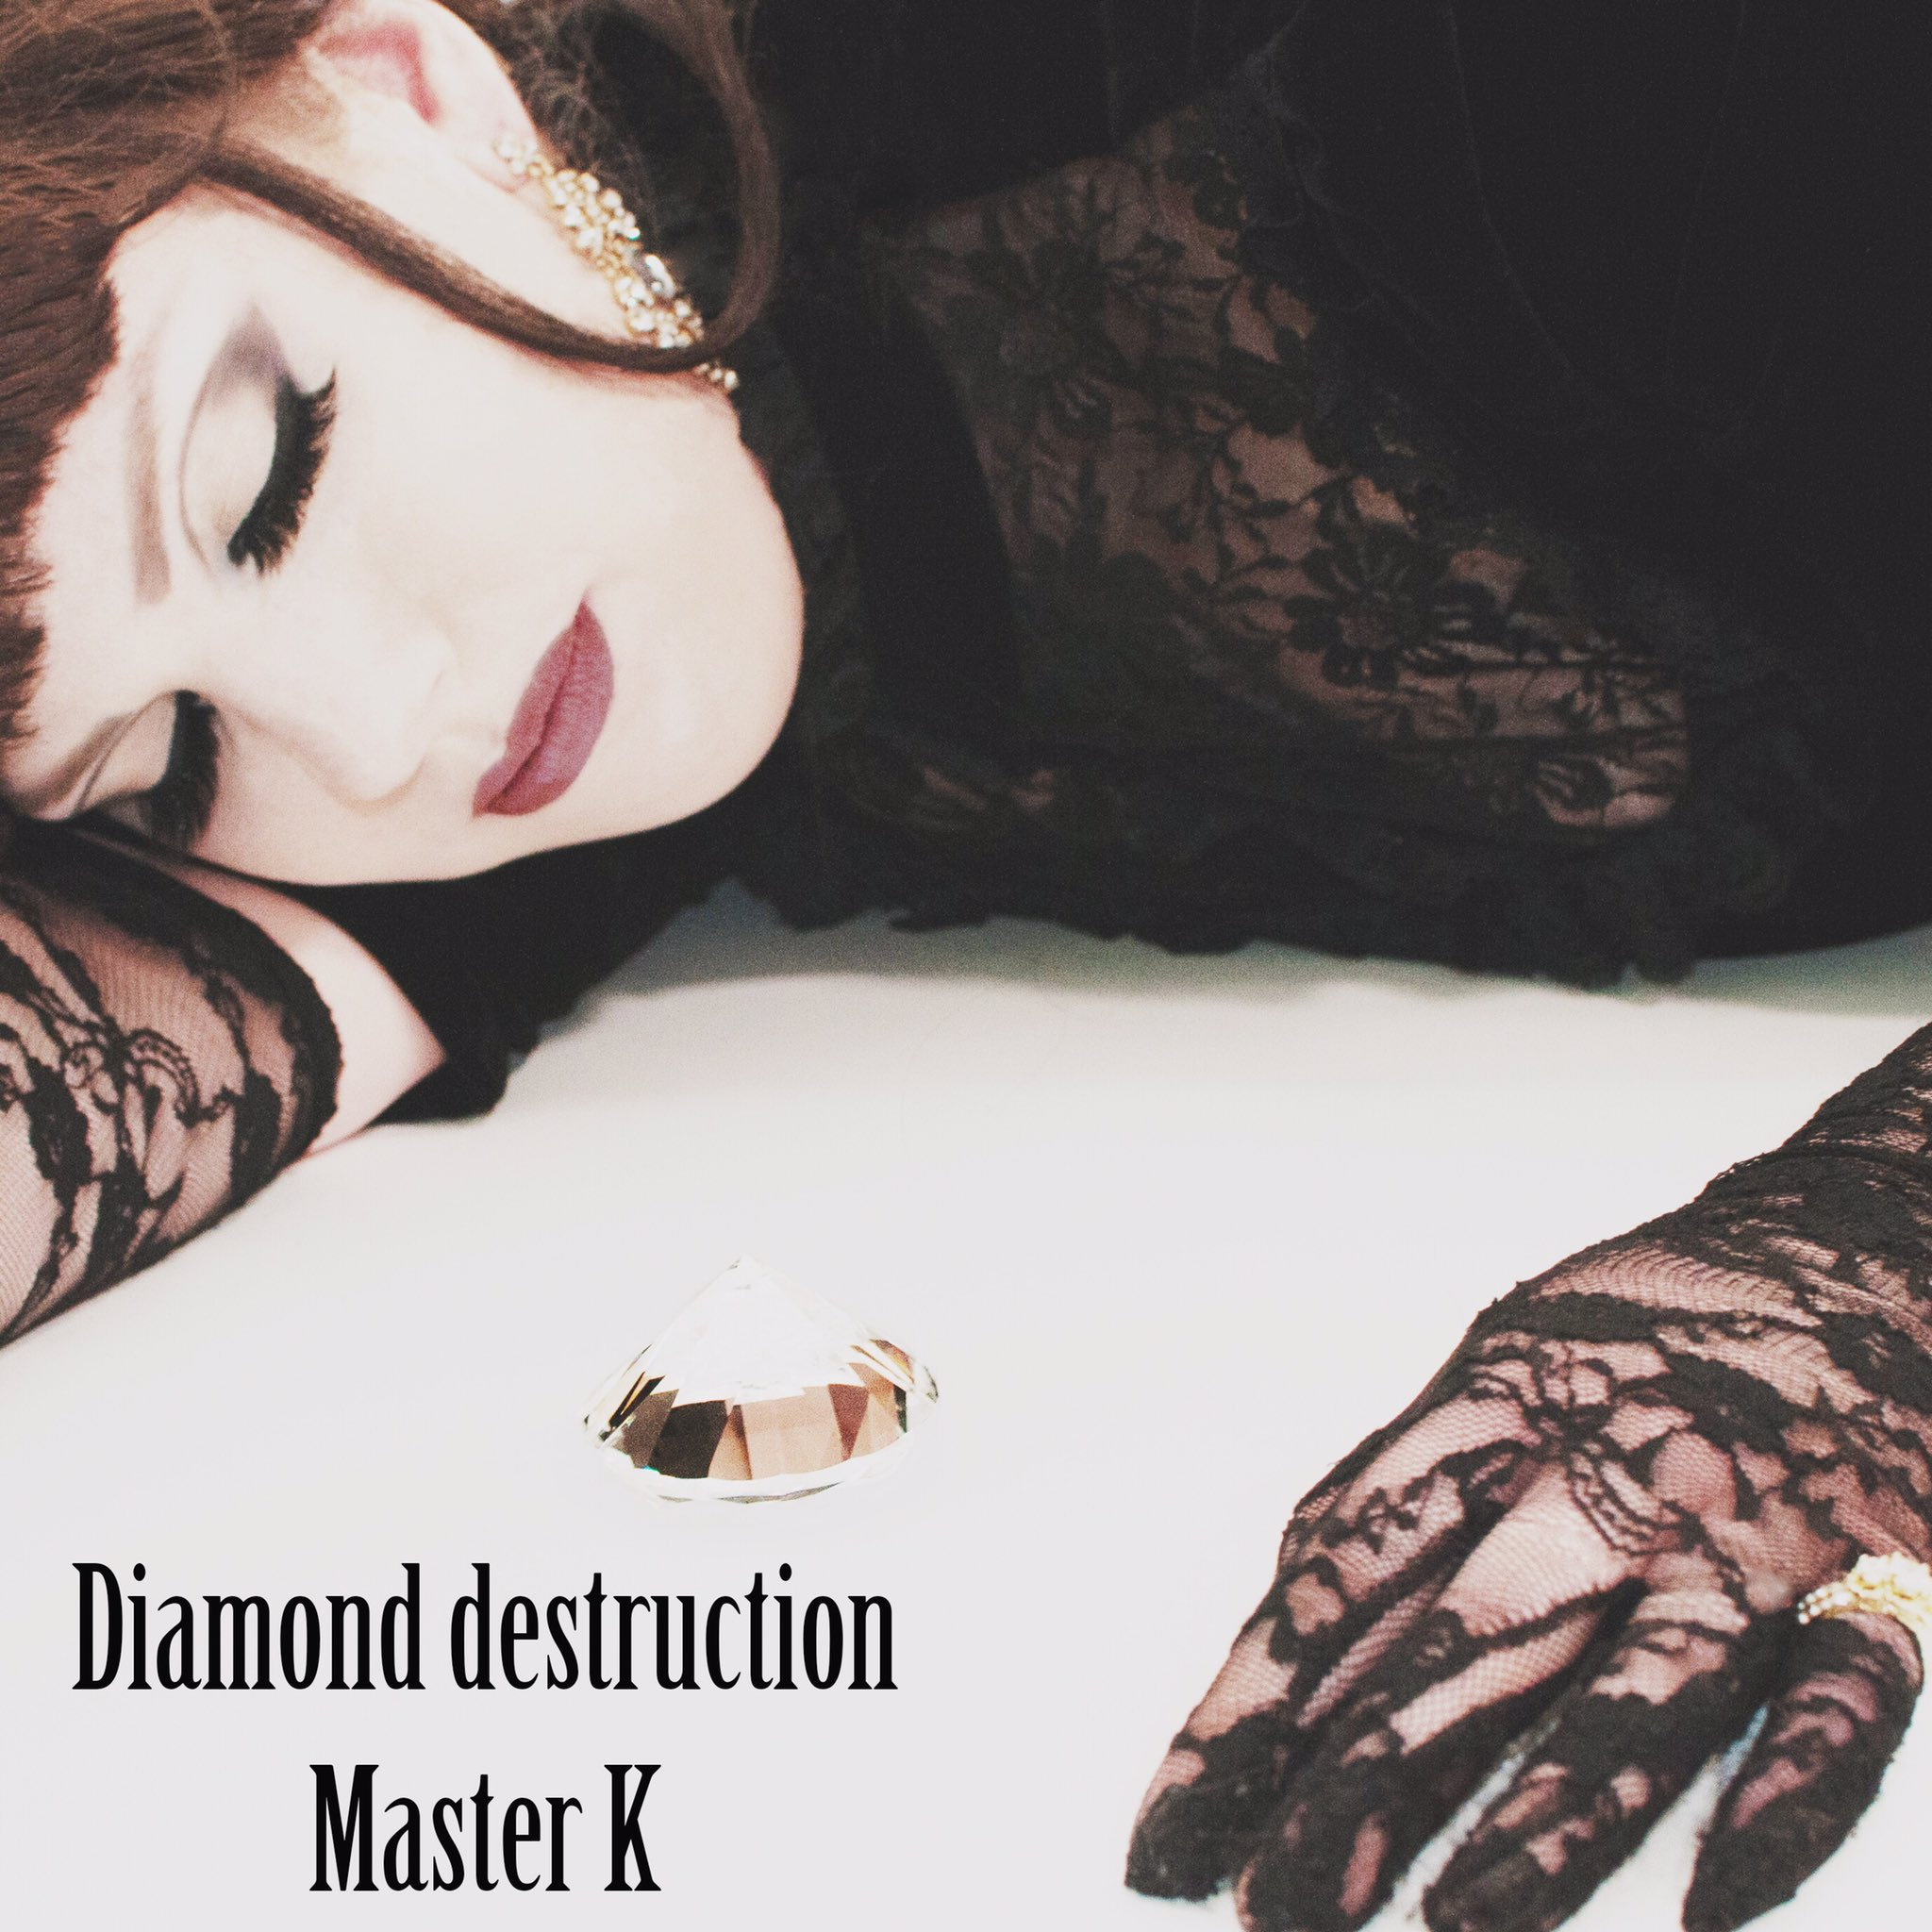 Master K Diamond destruction